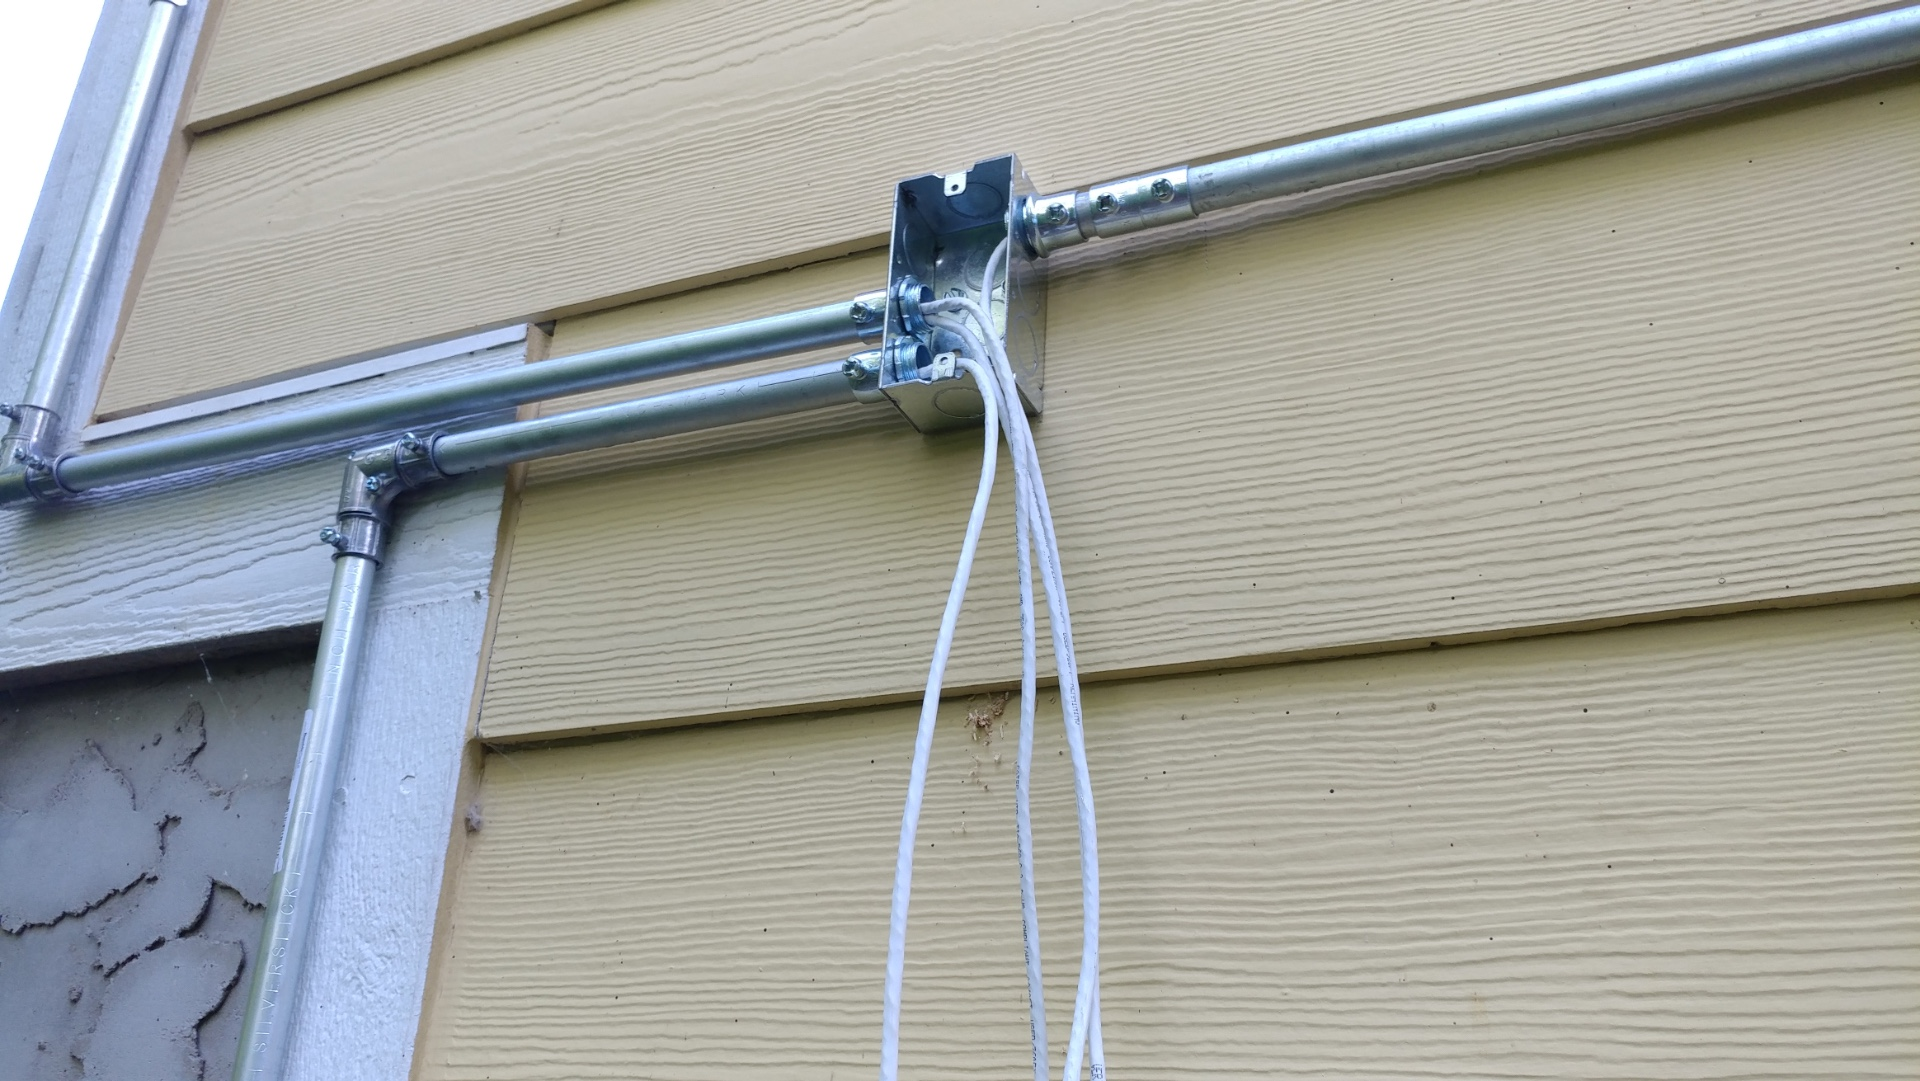 Using Electric Metal Tubing Emt With Scw Security Cameras Conduit For Outdoor Wiring Cabling Junction Box